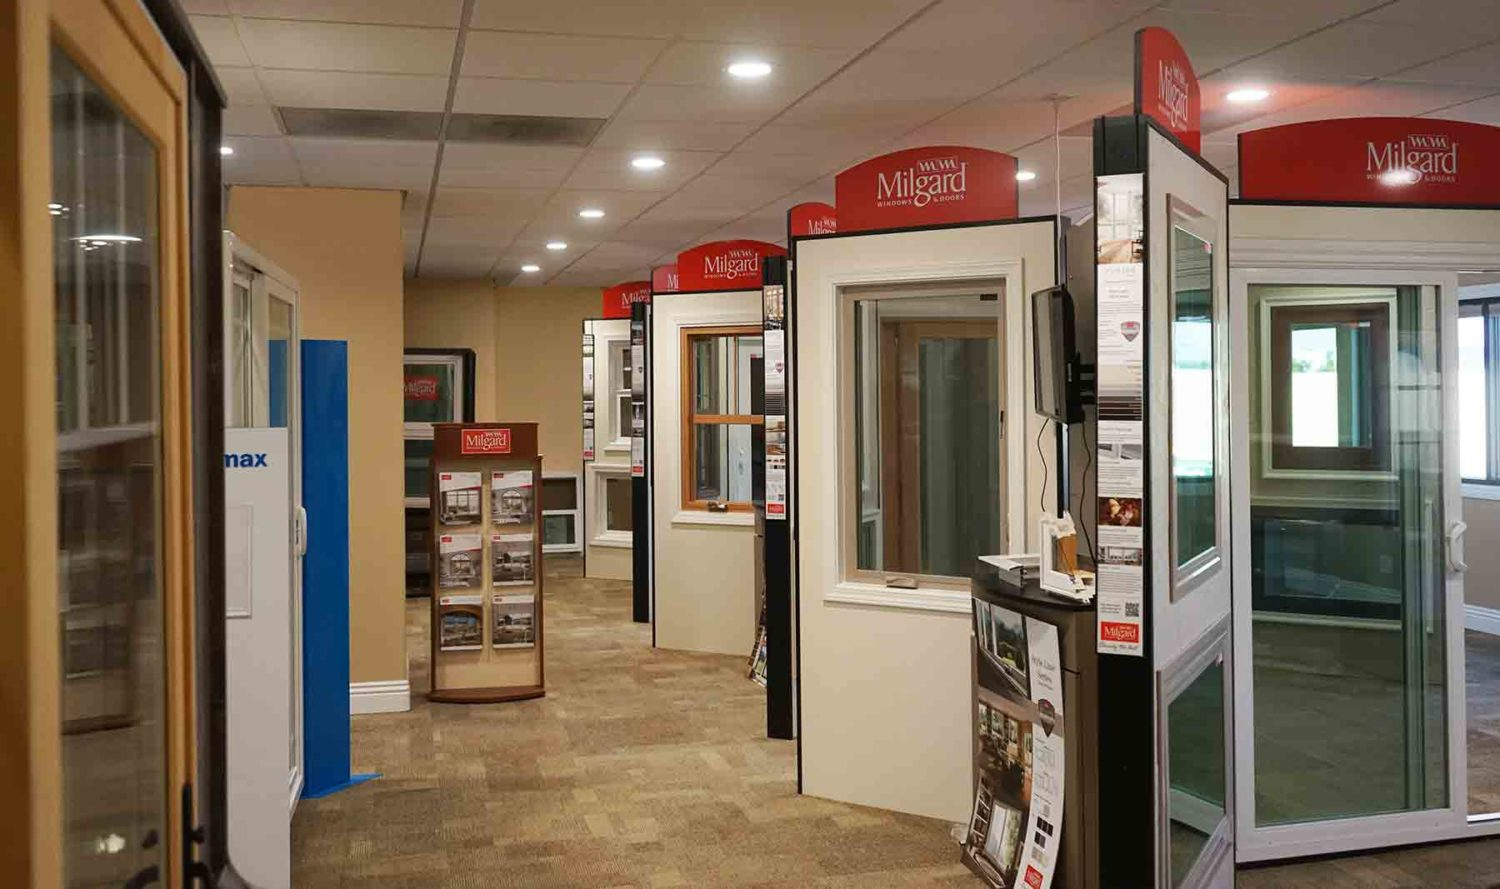 showcase of our Milgard windows that all are available for window retrofit